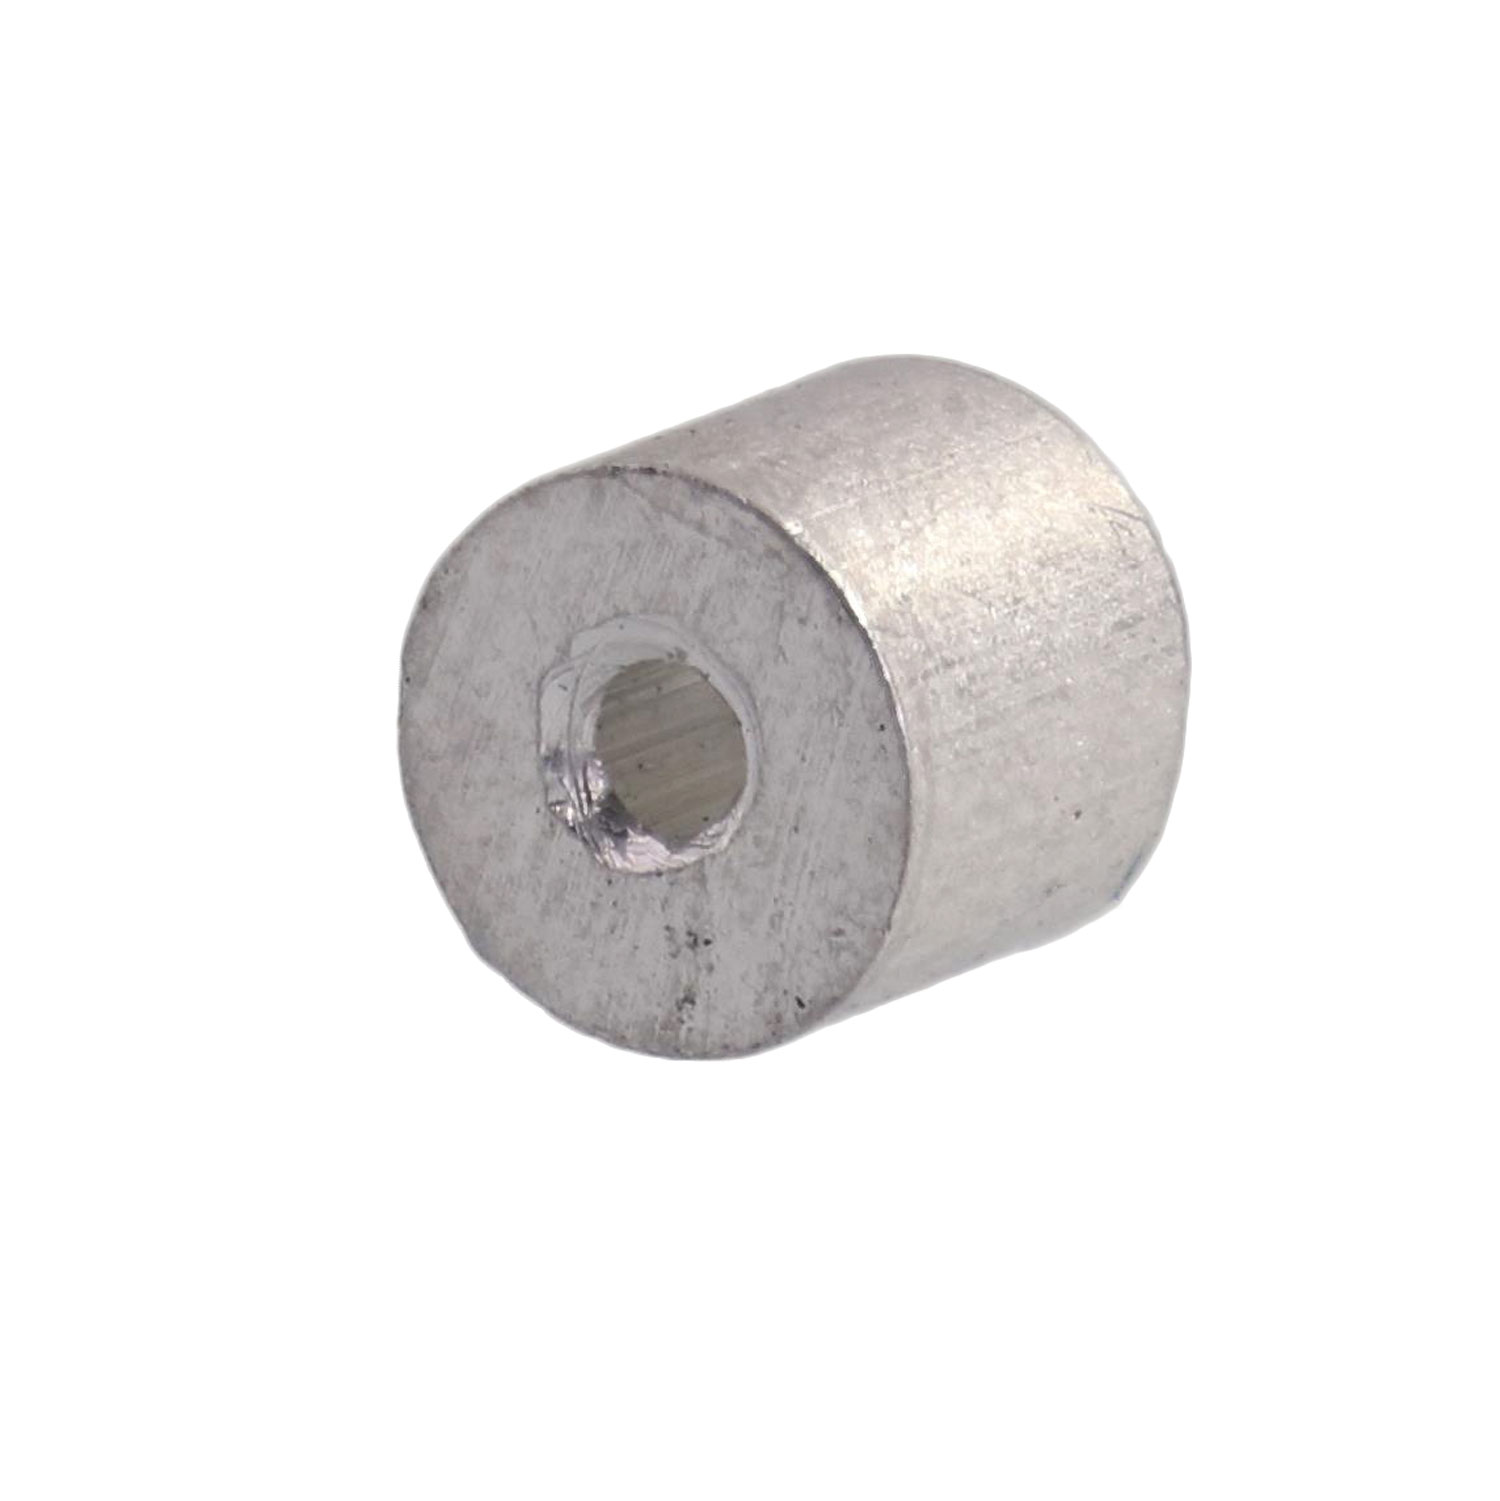 "1/16"" Aluminum Button Stop (Bag Qty. of 100) Image 1"